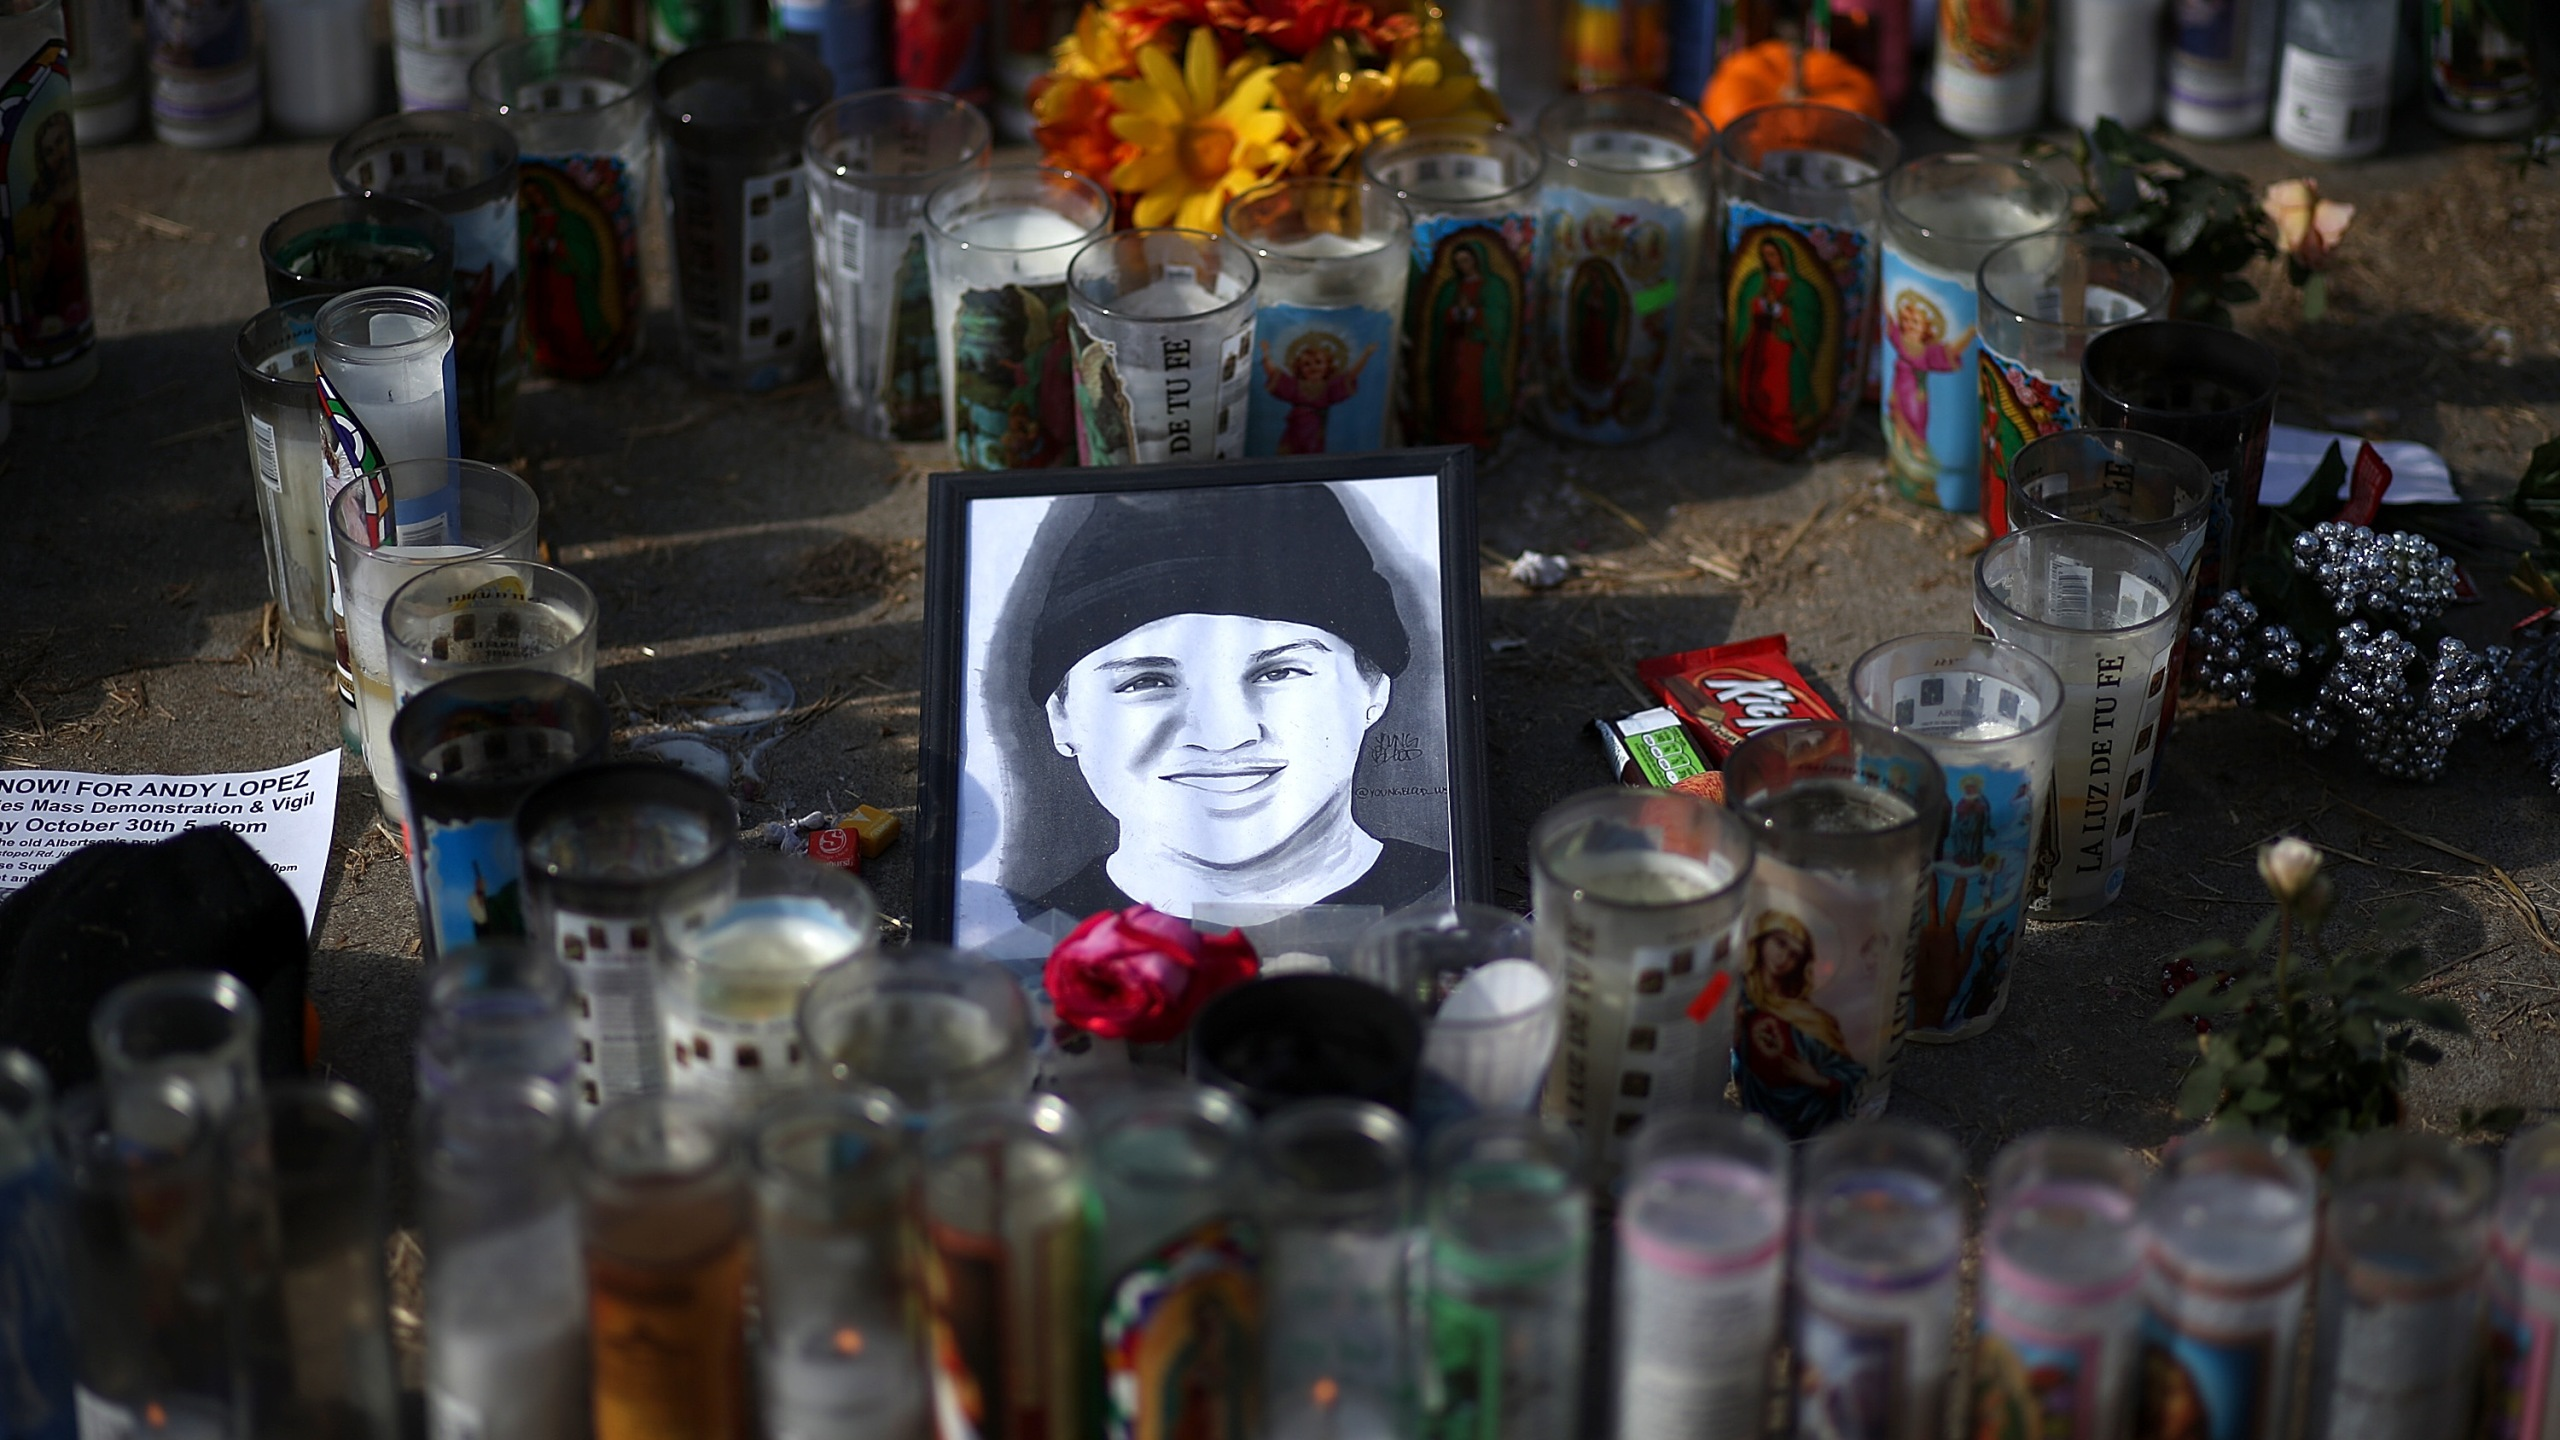 A picture of 13-year-old Andy Lopez sits with gifts and candles at a memorial in Santa Rosa on Oct. 29, 2013. (Credit: Justin Sullivan / Getty Images)